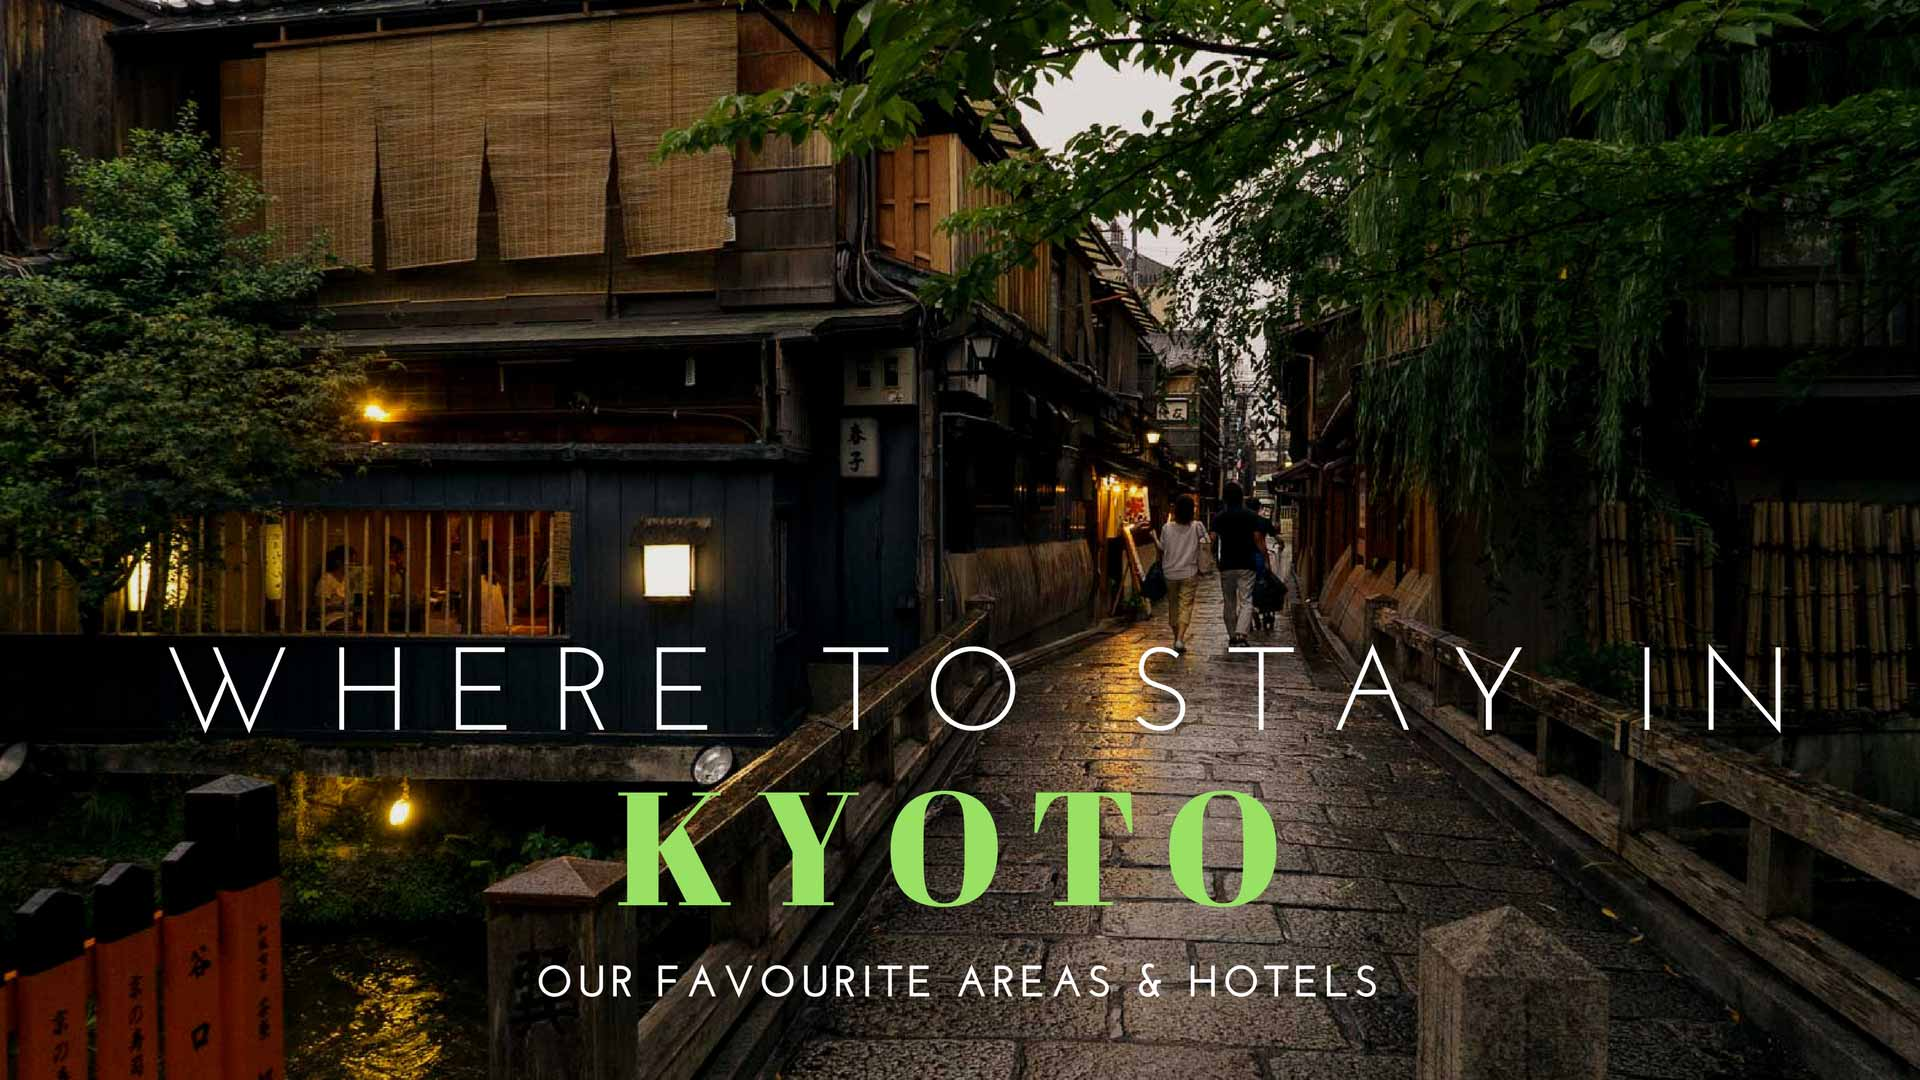 Where To Stay in Kyoto – Our Favourite Areas & Hotels